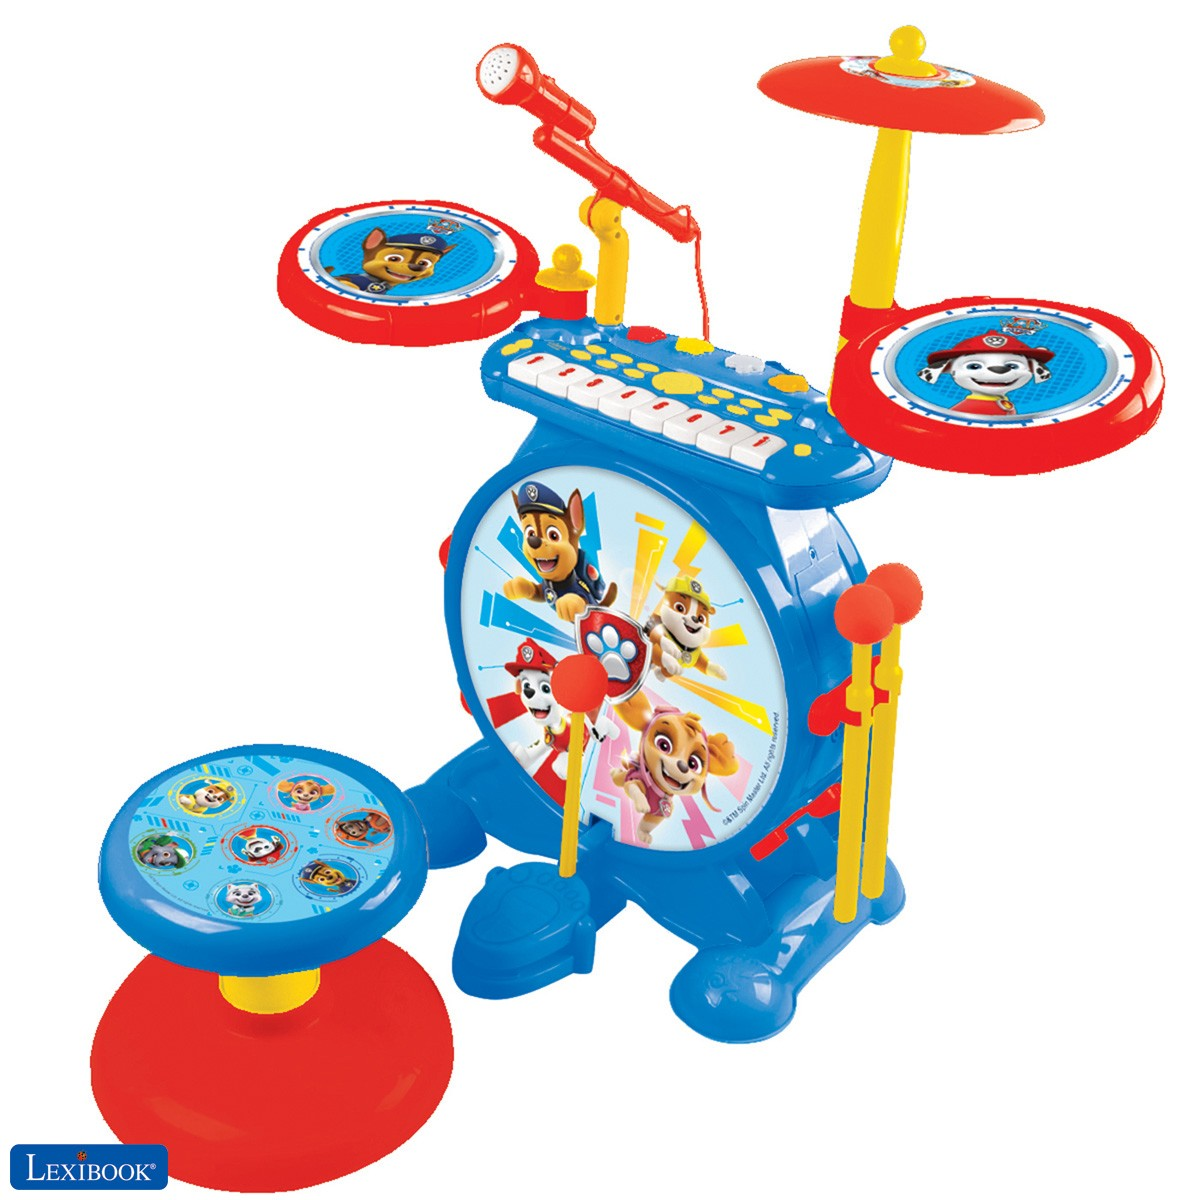 Paw Patrol Chase Electronic Drum Set for children